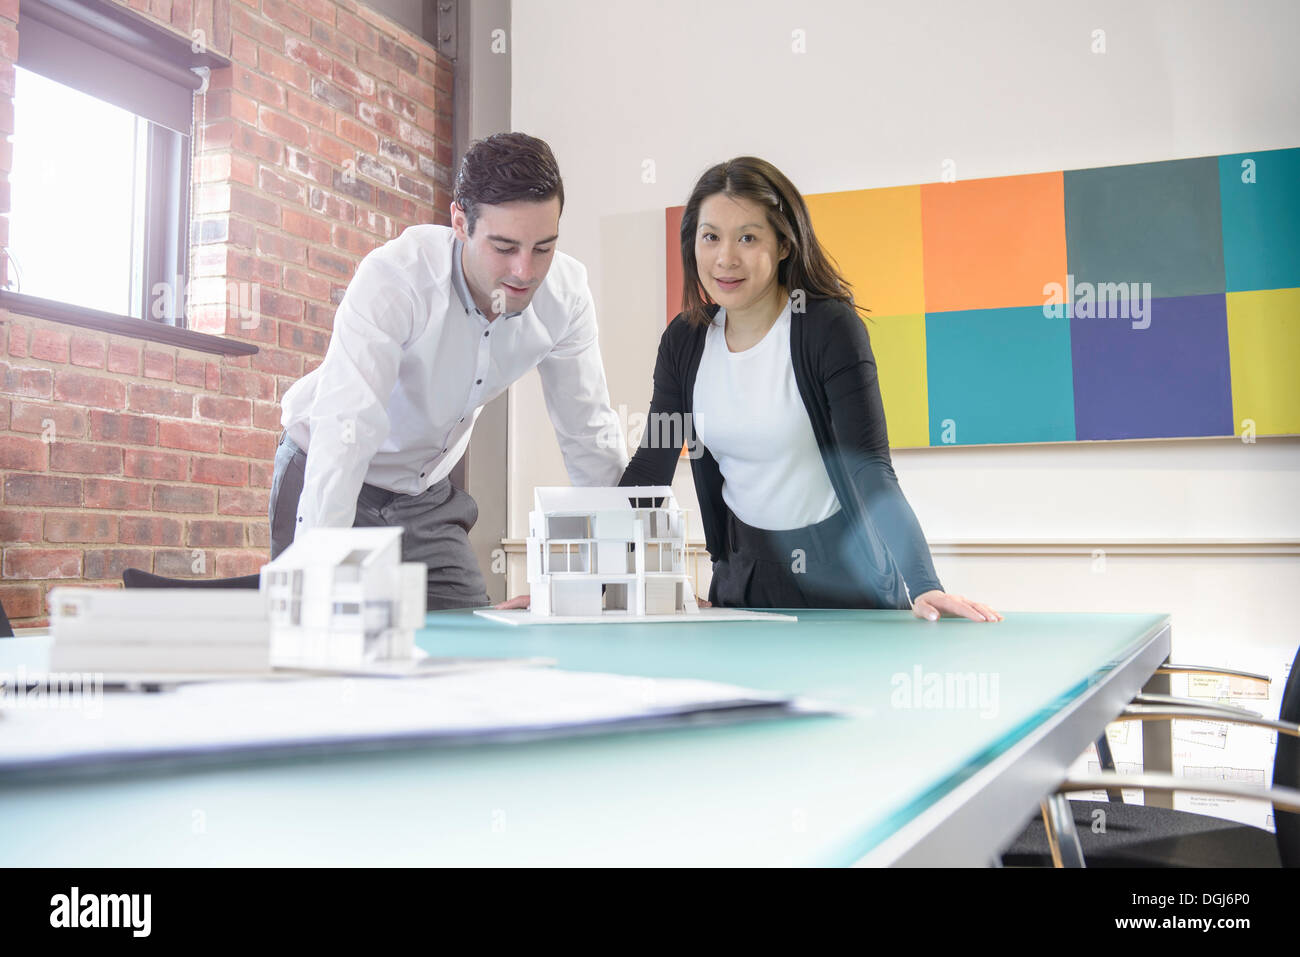 Architect working with colleague in office, portrait - Stock Image